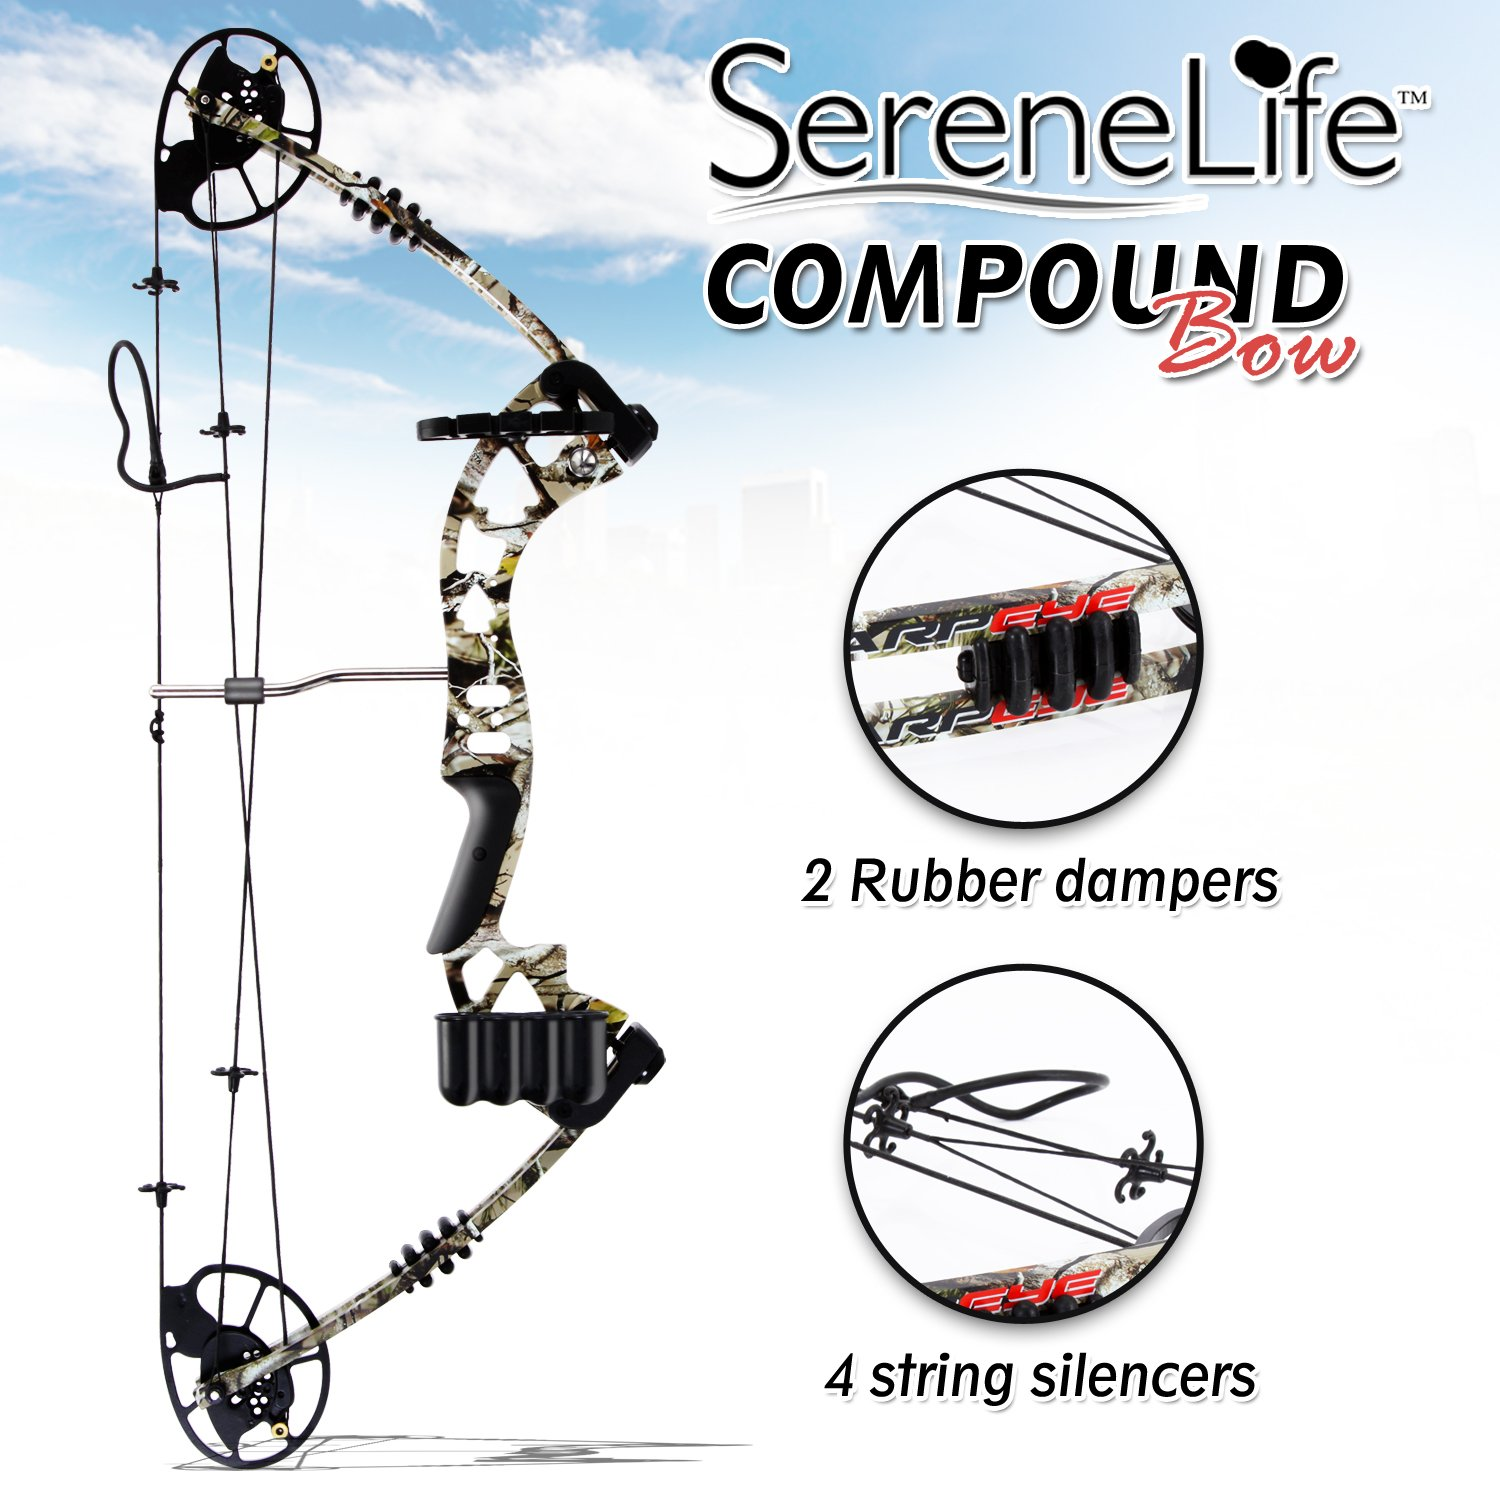 SereneLife Compound Bow, Adjustable Draw Weight 30-70 lbs with Max Speed 320 fps - Right Handed (SLCOMB10) by SereneLife (Image #4)